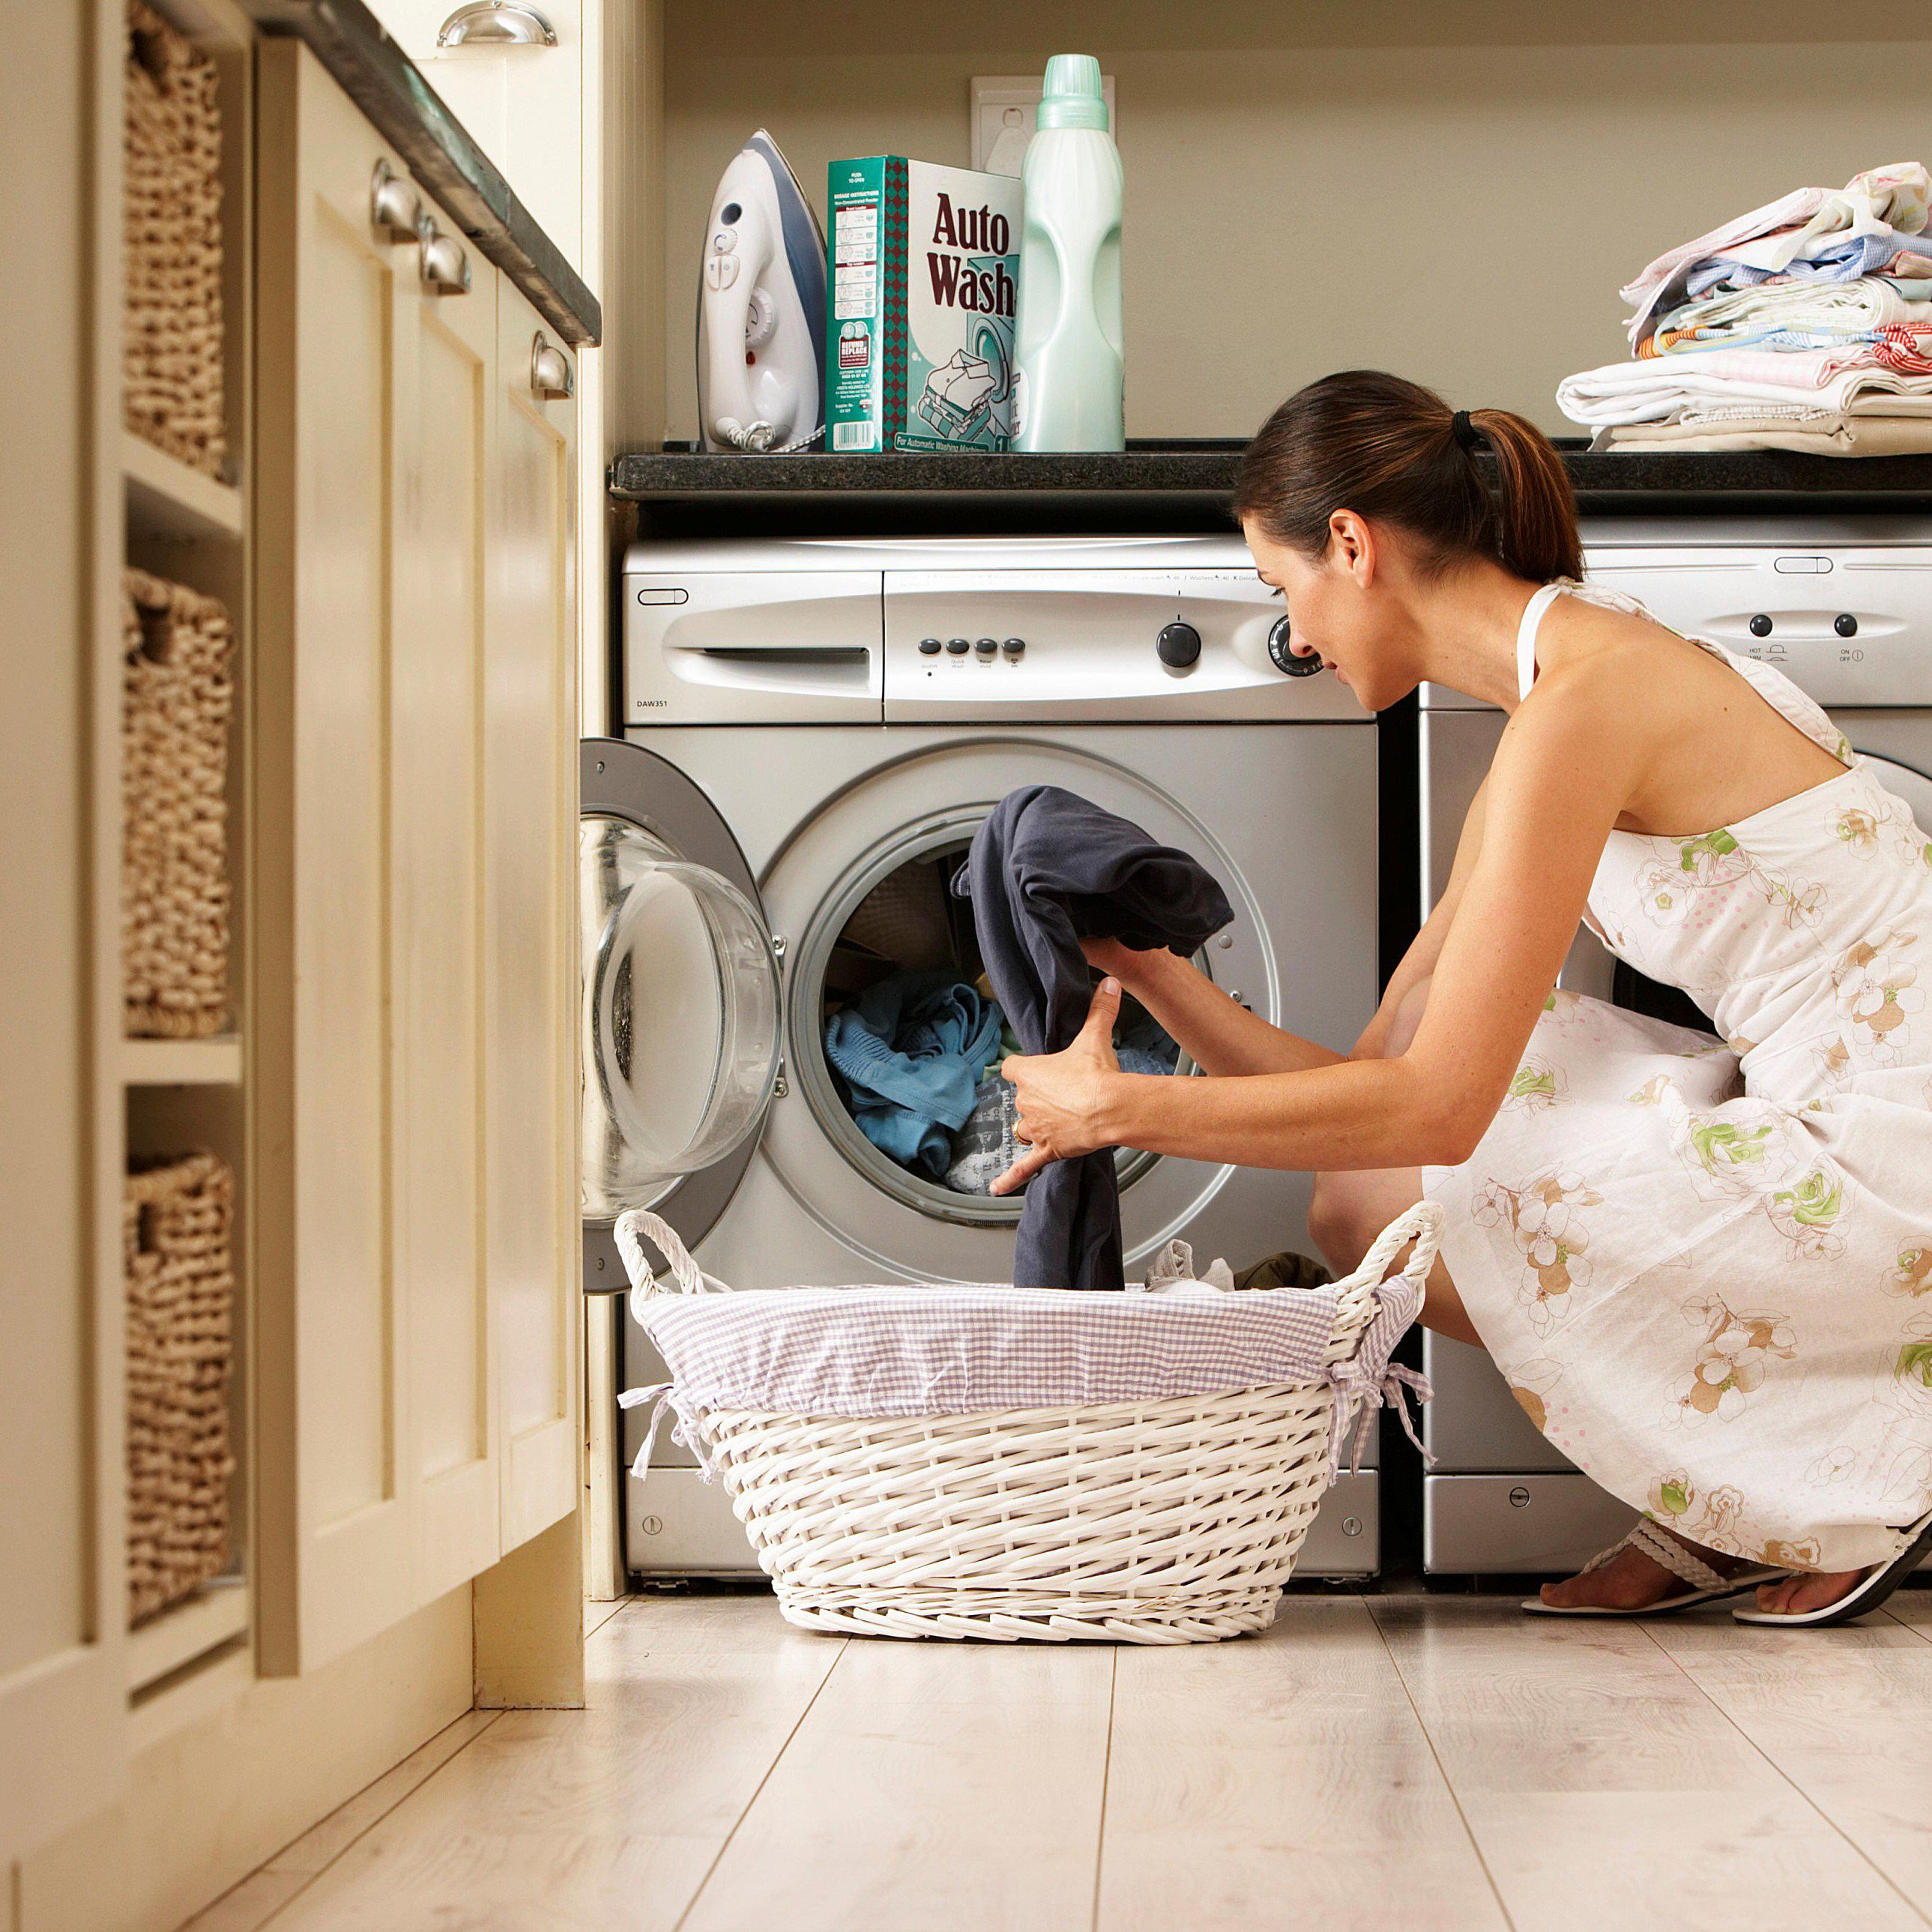 How To Make Your Clothes Smell Good In The Dryer 5 ways to remove odor from running clothes